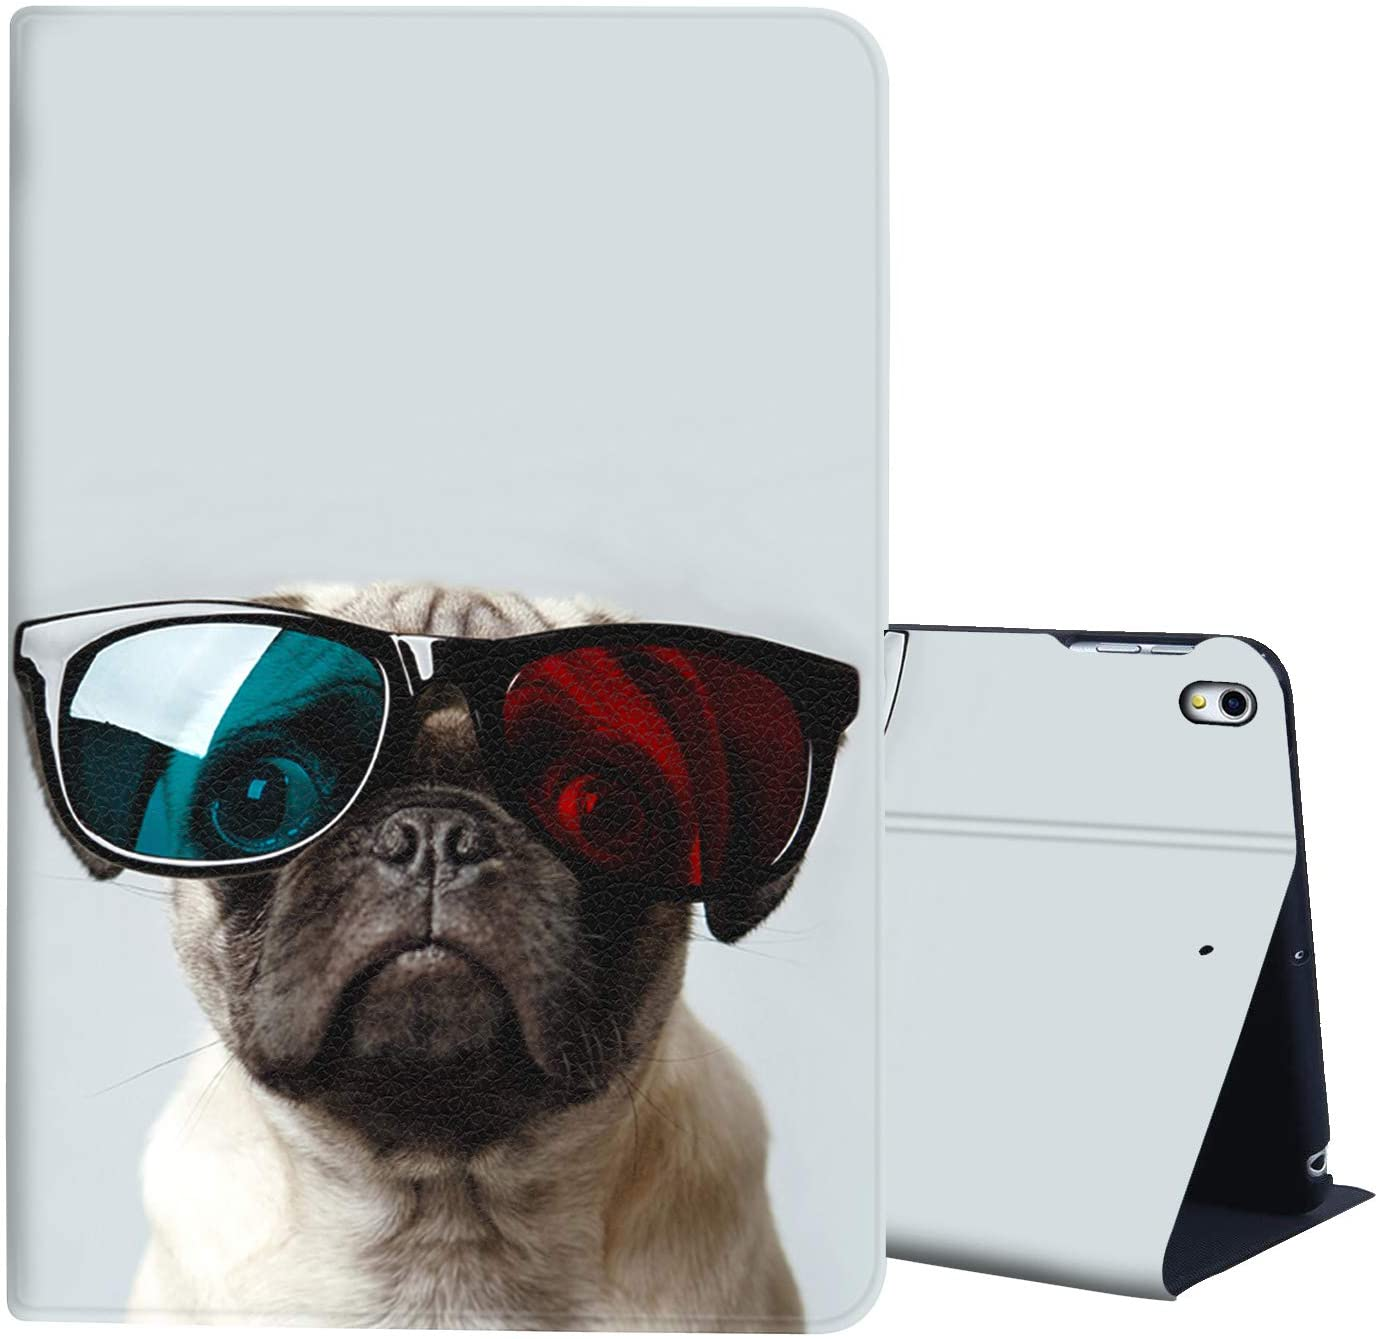 iPad Pro 12.9 Case 2018,AIRWEE Full Body Protective Rugged Shockproof Case with Adjustable Angle & Auto Sleep/Wake for Apple iPad 12.9 Inch 3rd Gen,Pug Dog with Glasses